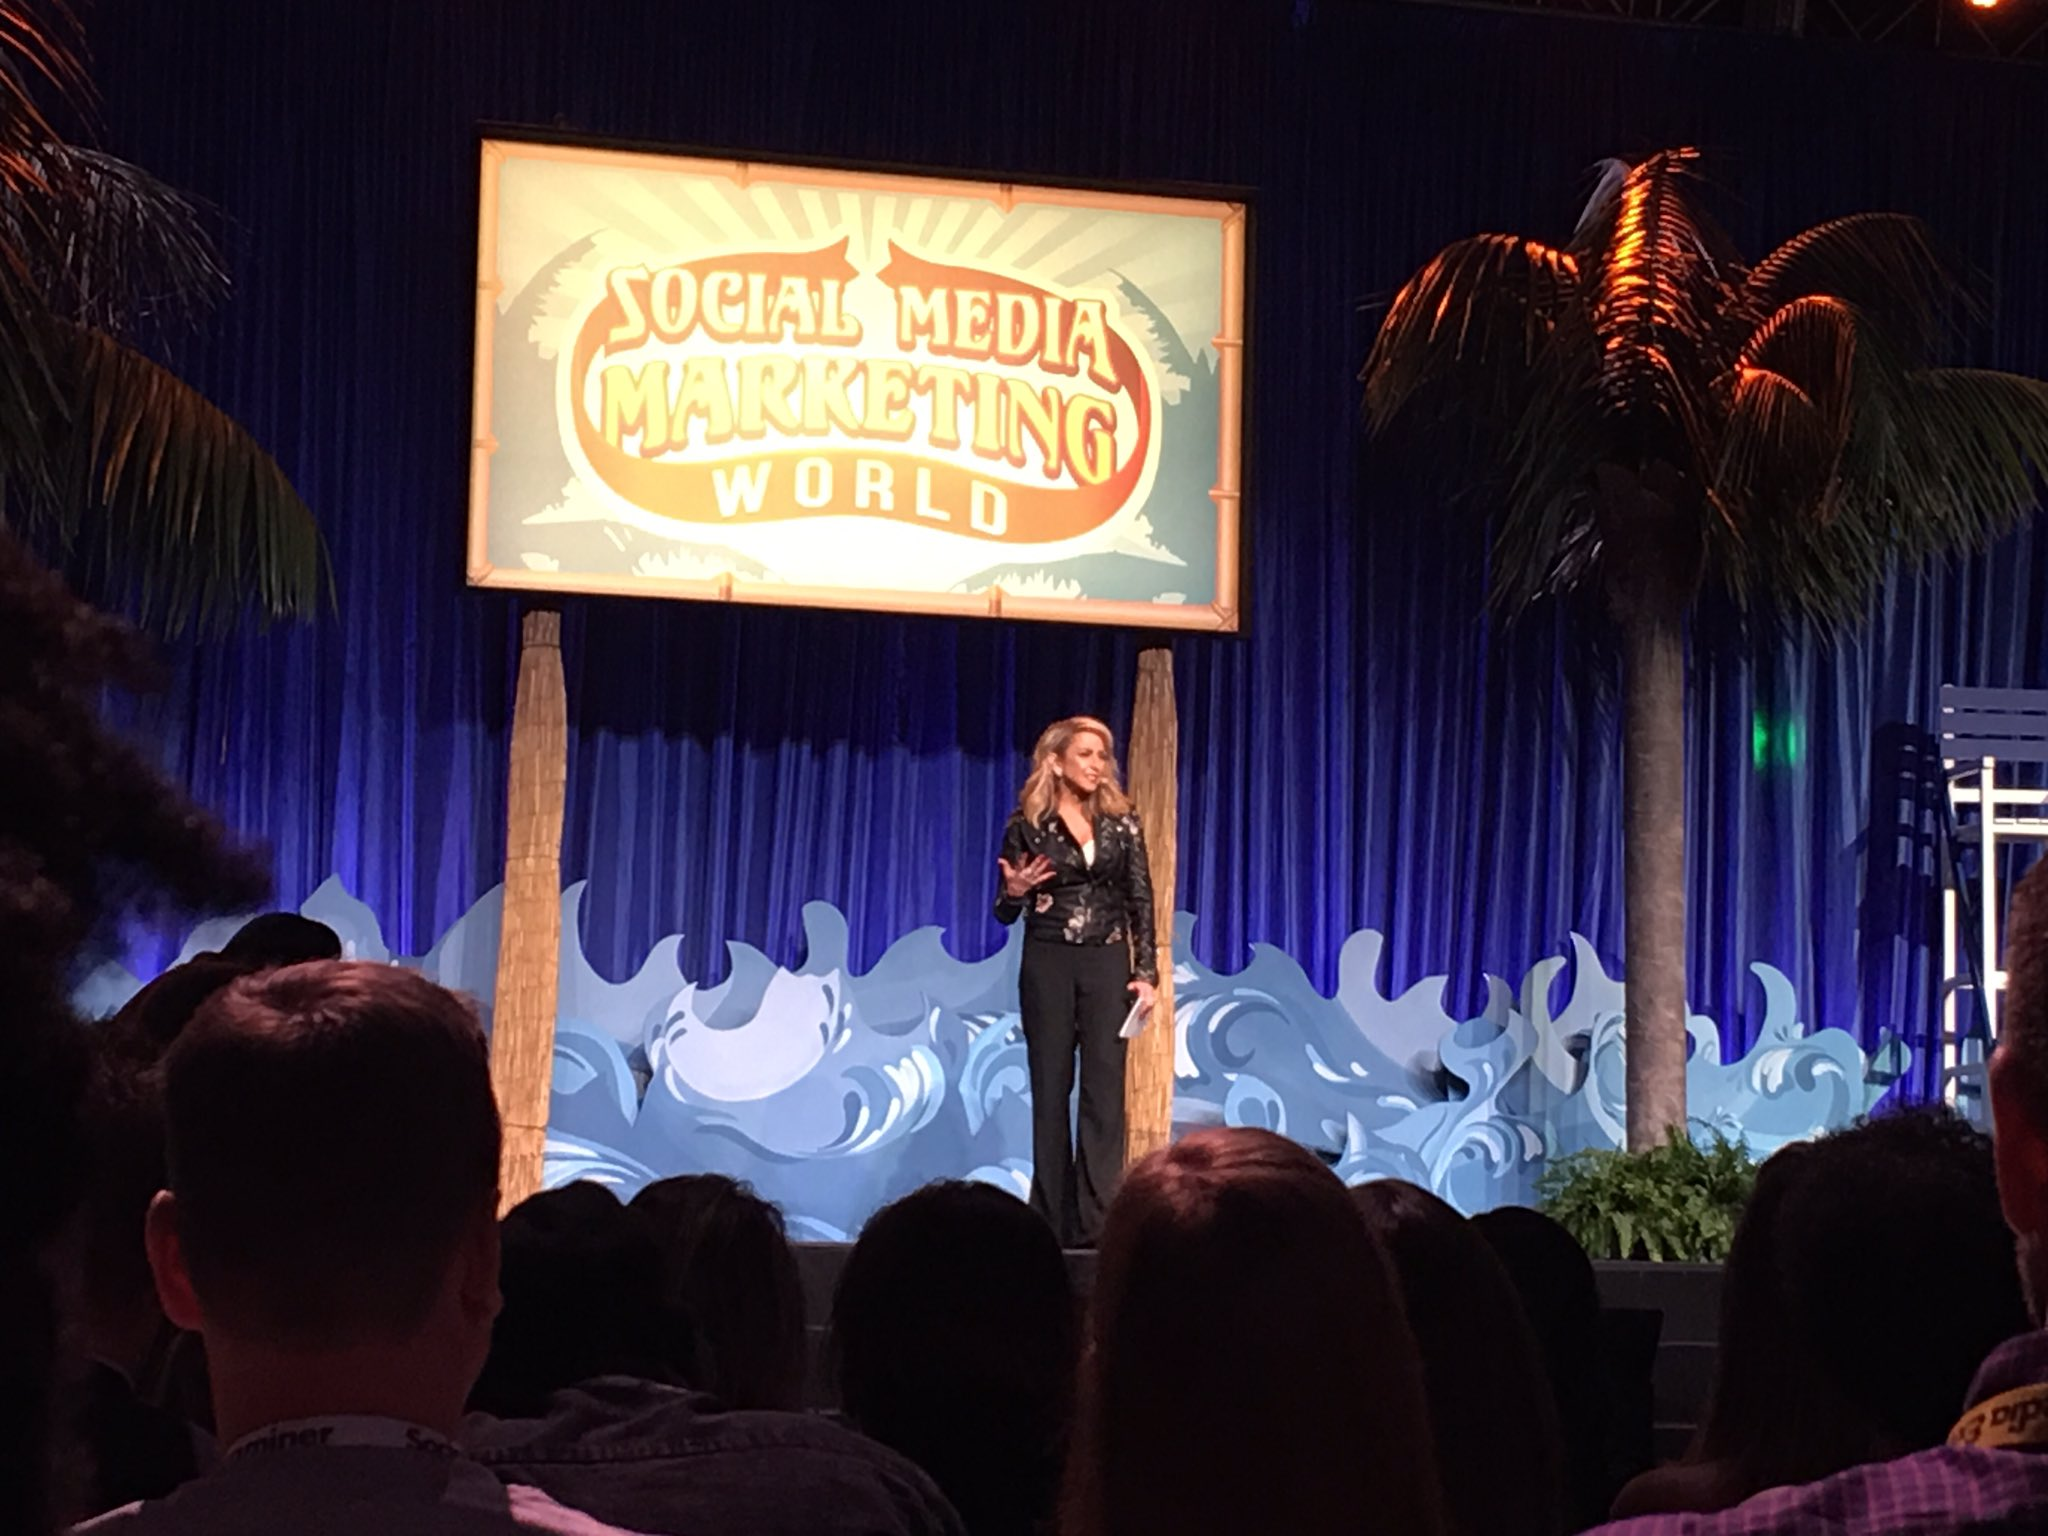 The amazing & energetic @ChaleneJohnson - what an awesome way to finish Social Media Marketing World 2017! #SMMW17 #fitness #inspiration https://t.co/eIIVcAhy2v